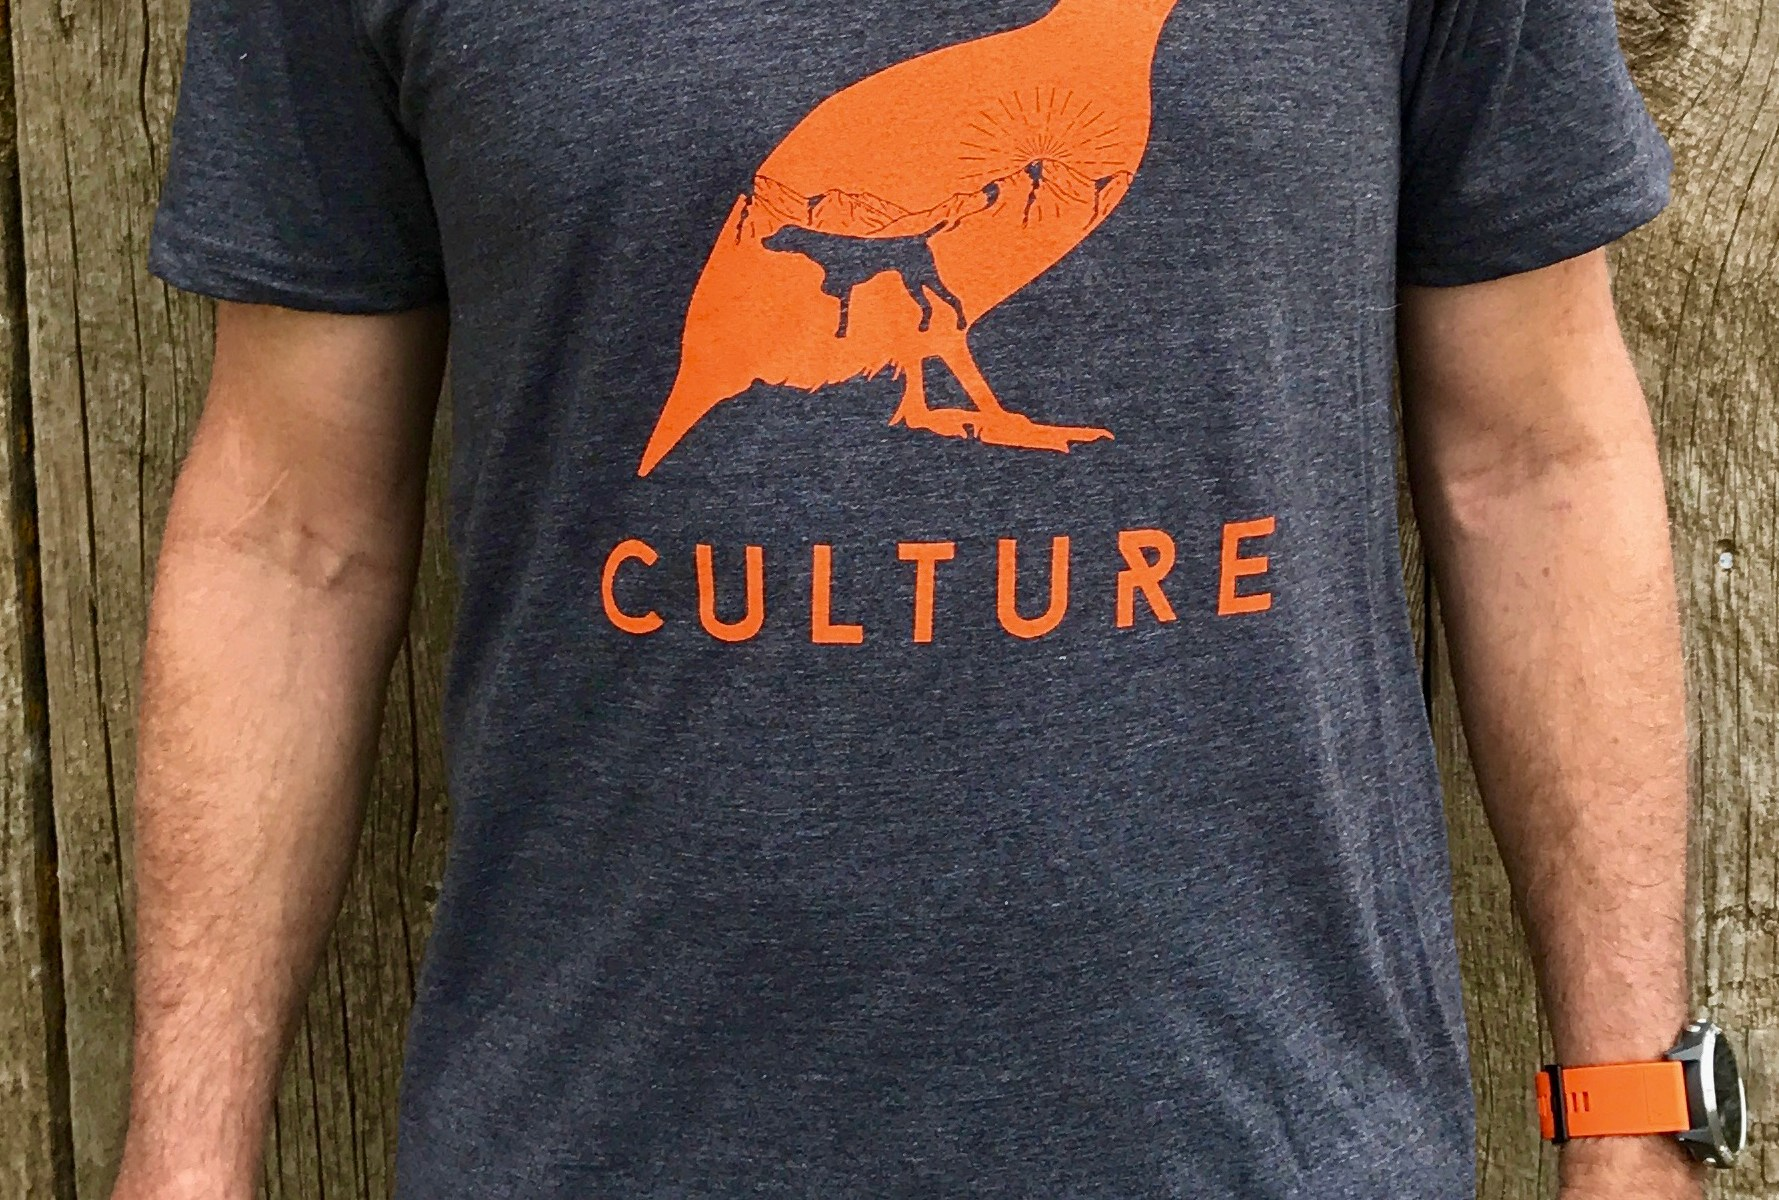 Heathered Charcoal Chukar Culture T-shirt